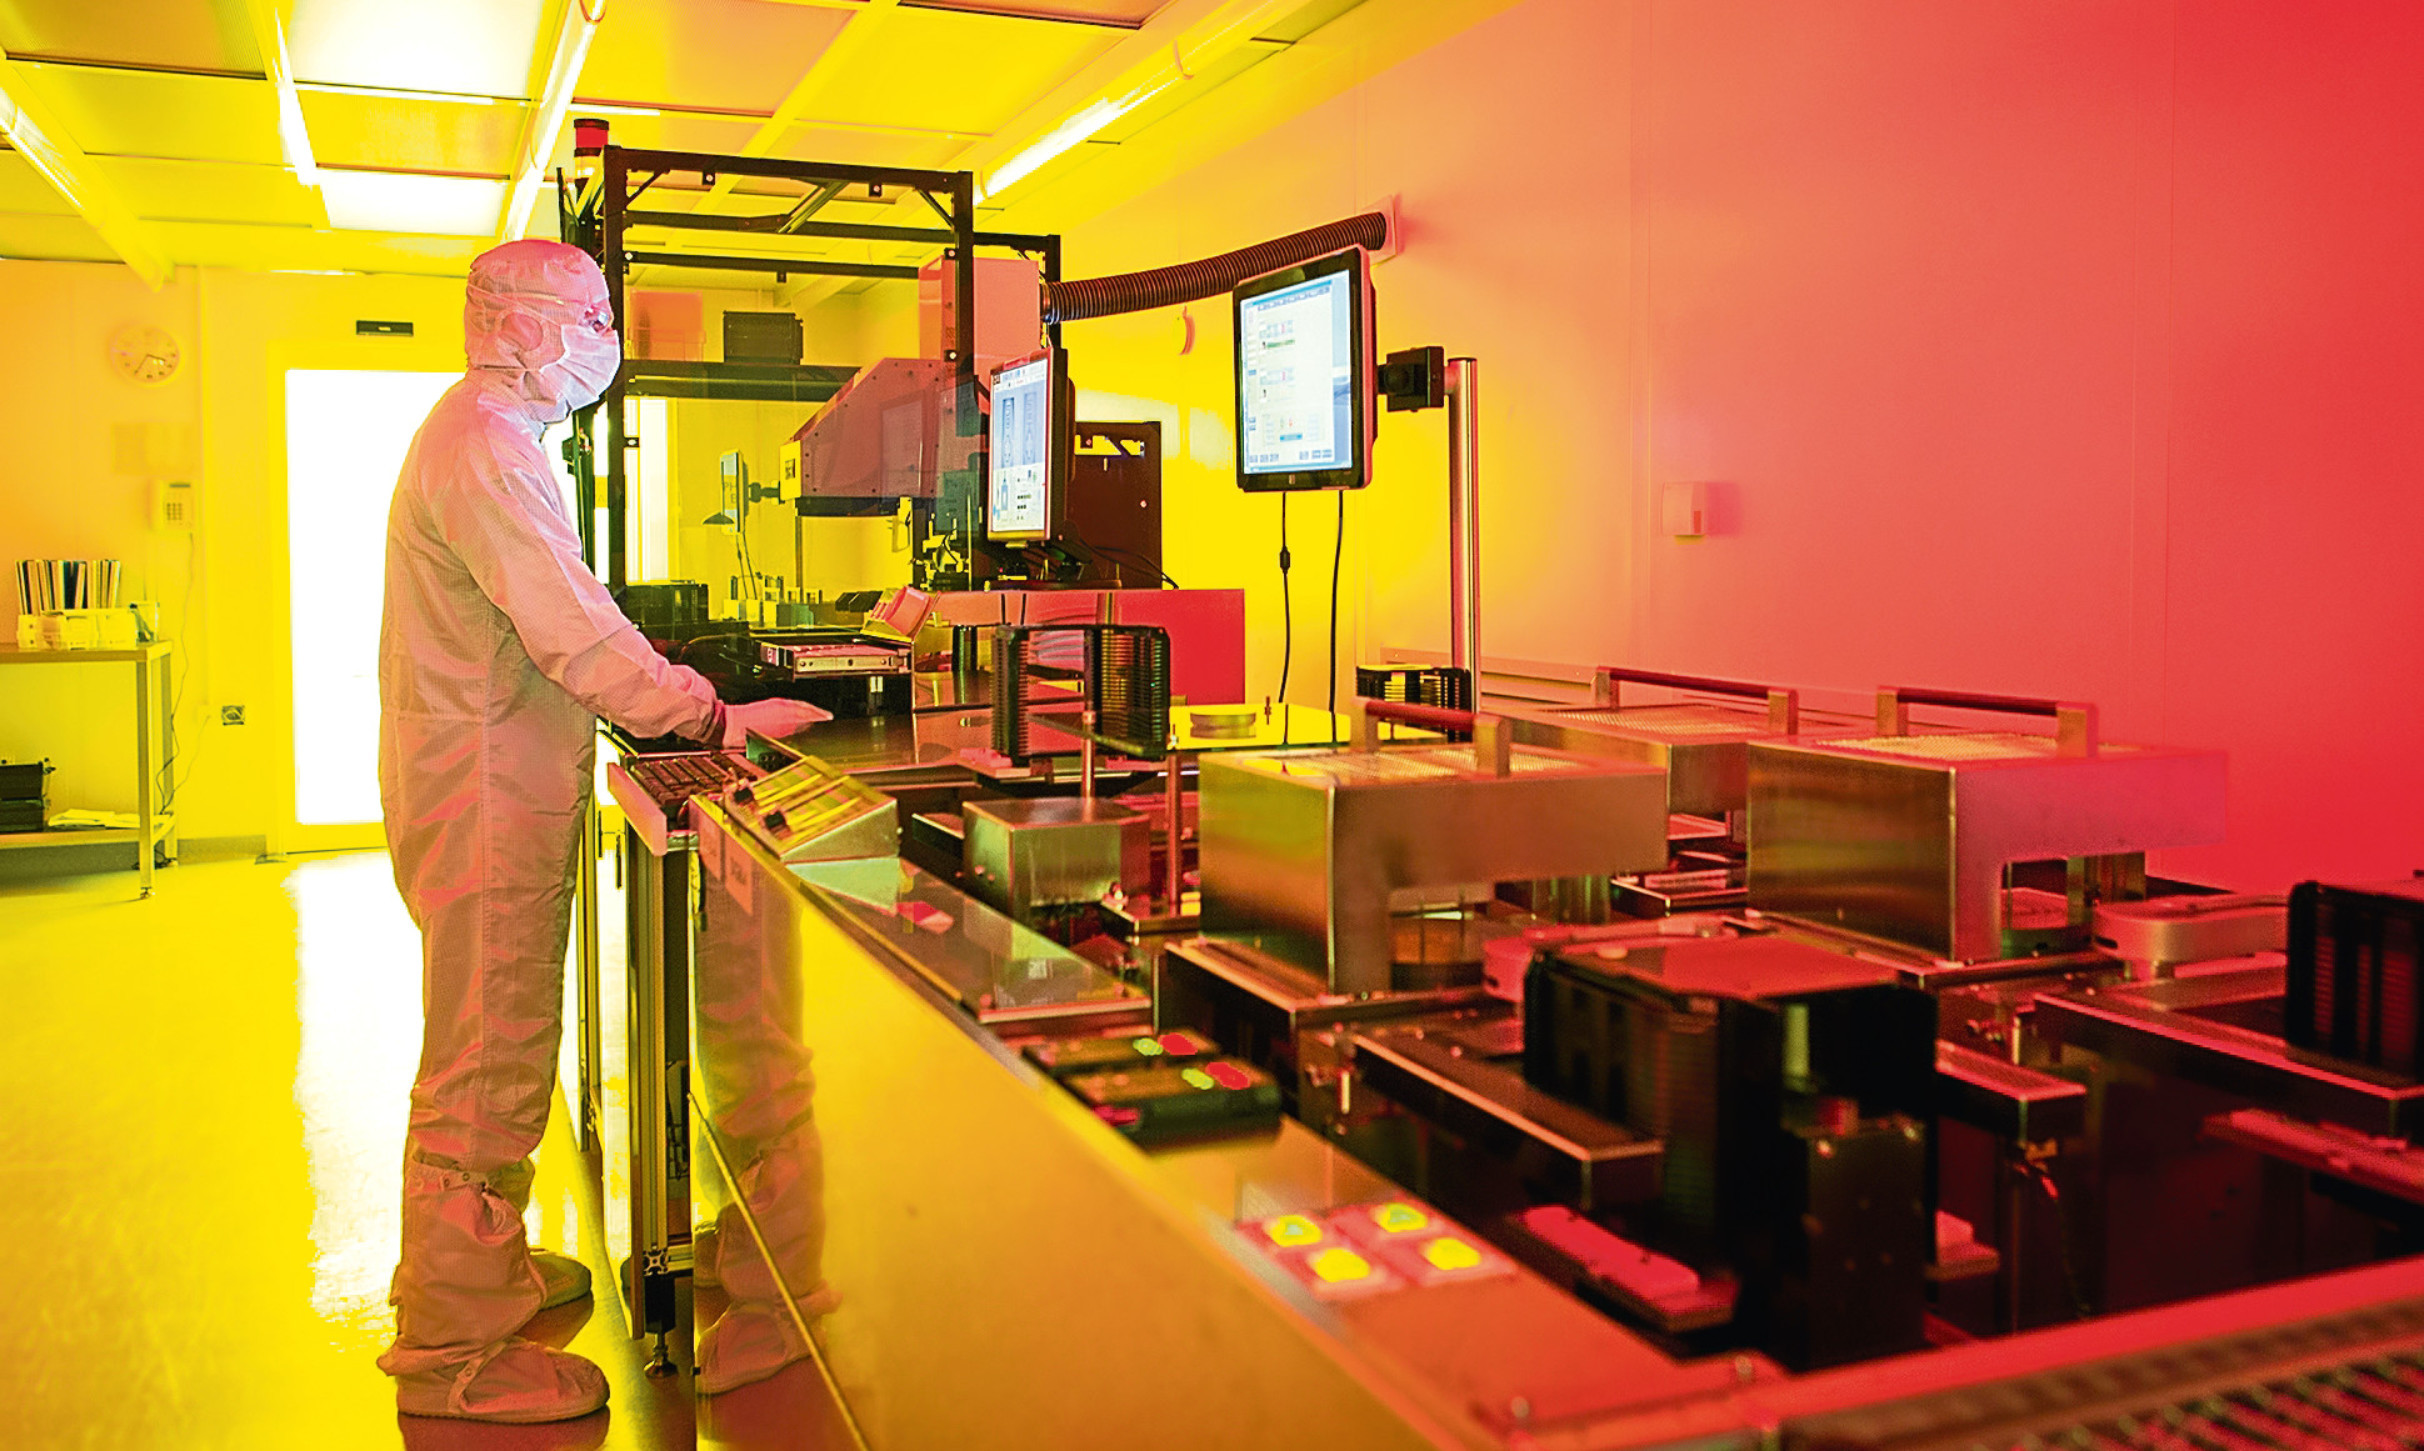 A worker at Semefab's Glenrothes facility